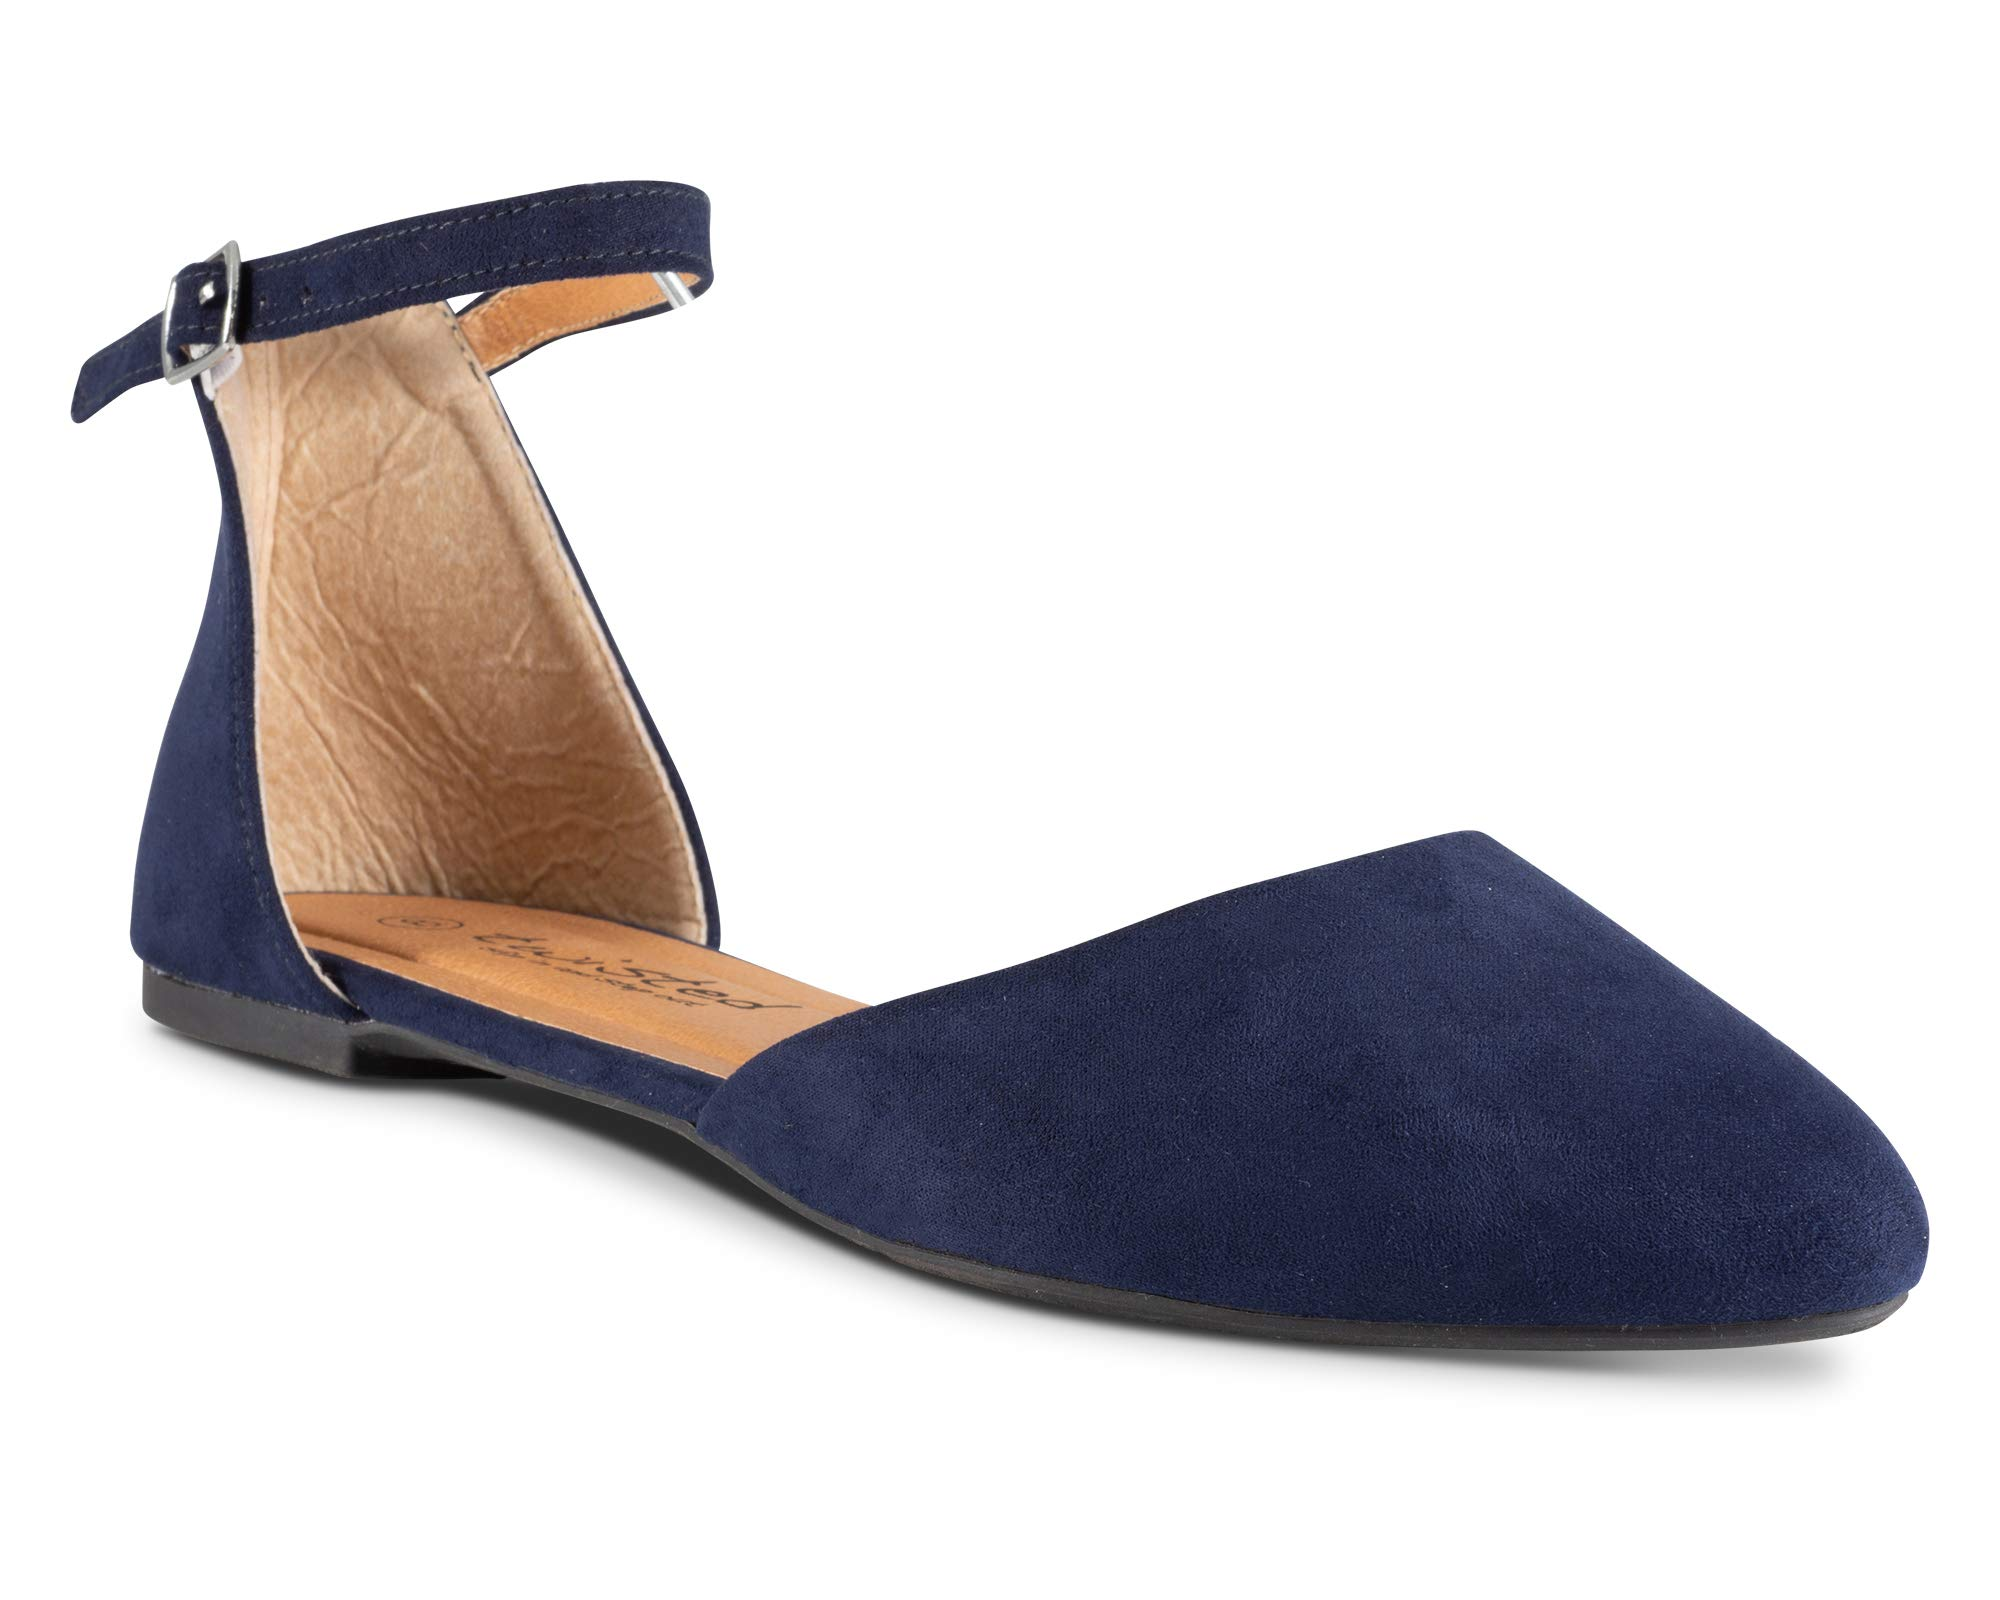 Twisted Womens Faux Suede Almond Toe Ballet Flat with Ankle Strap Lindsay 687-NAVY Size 9